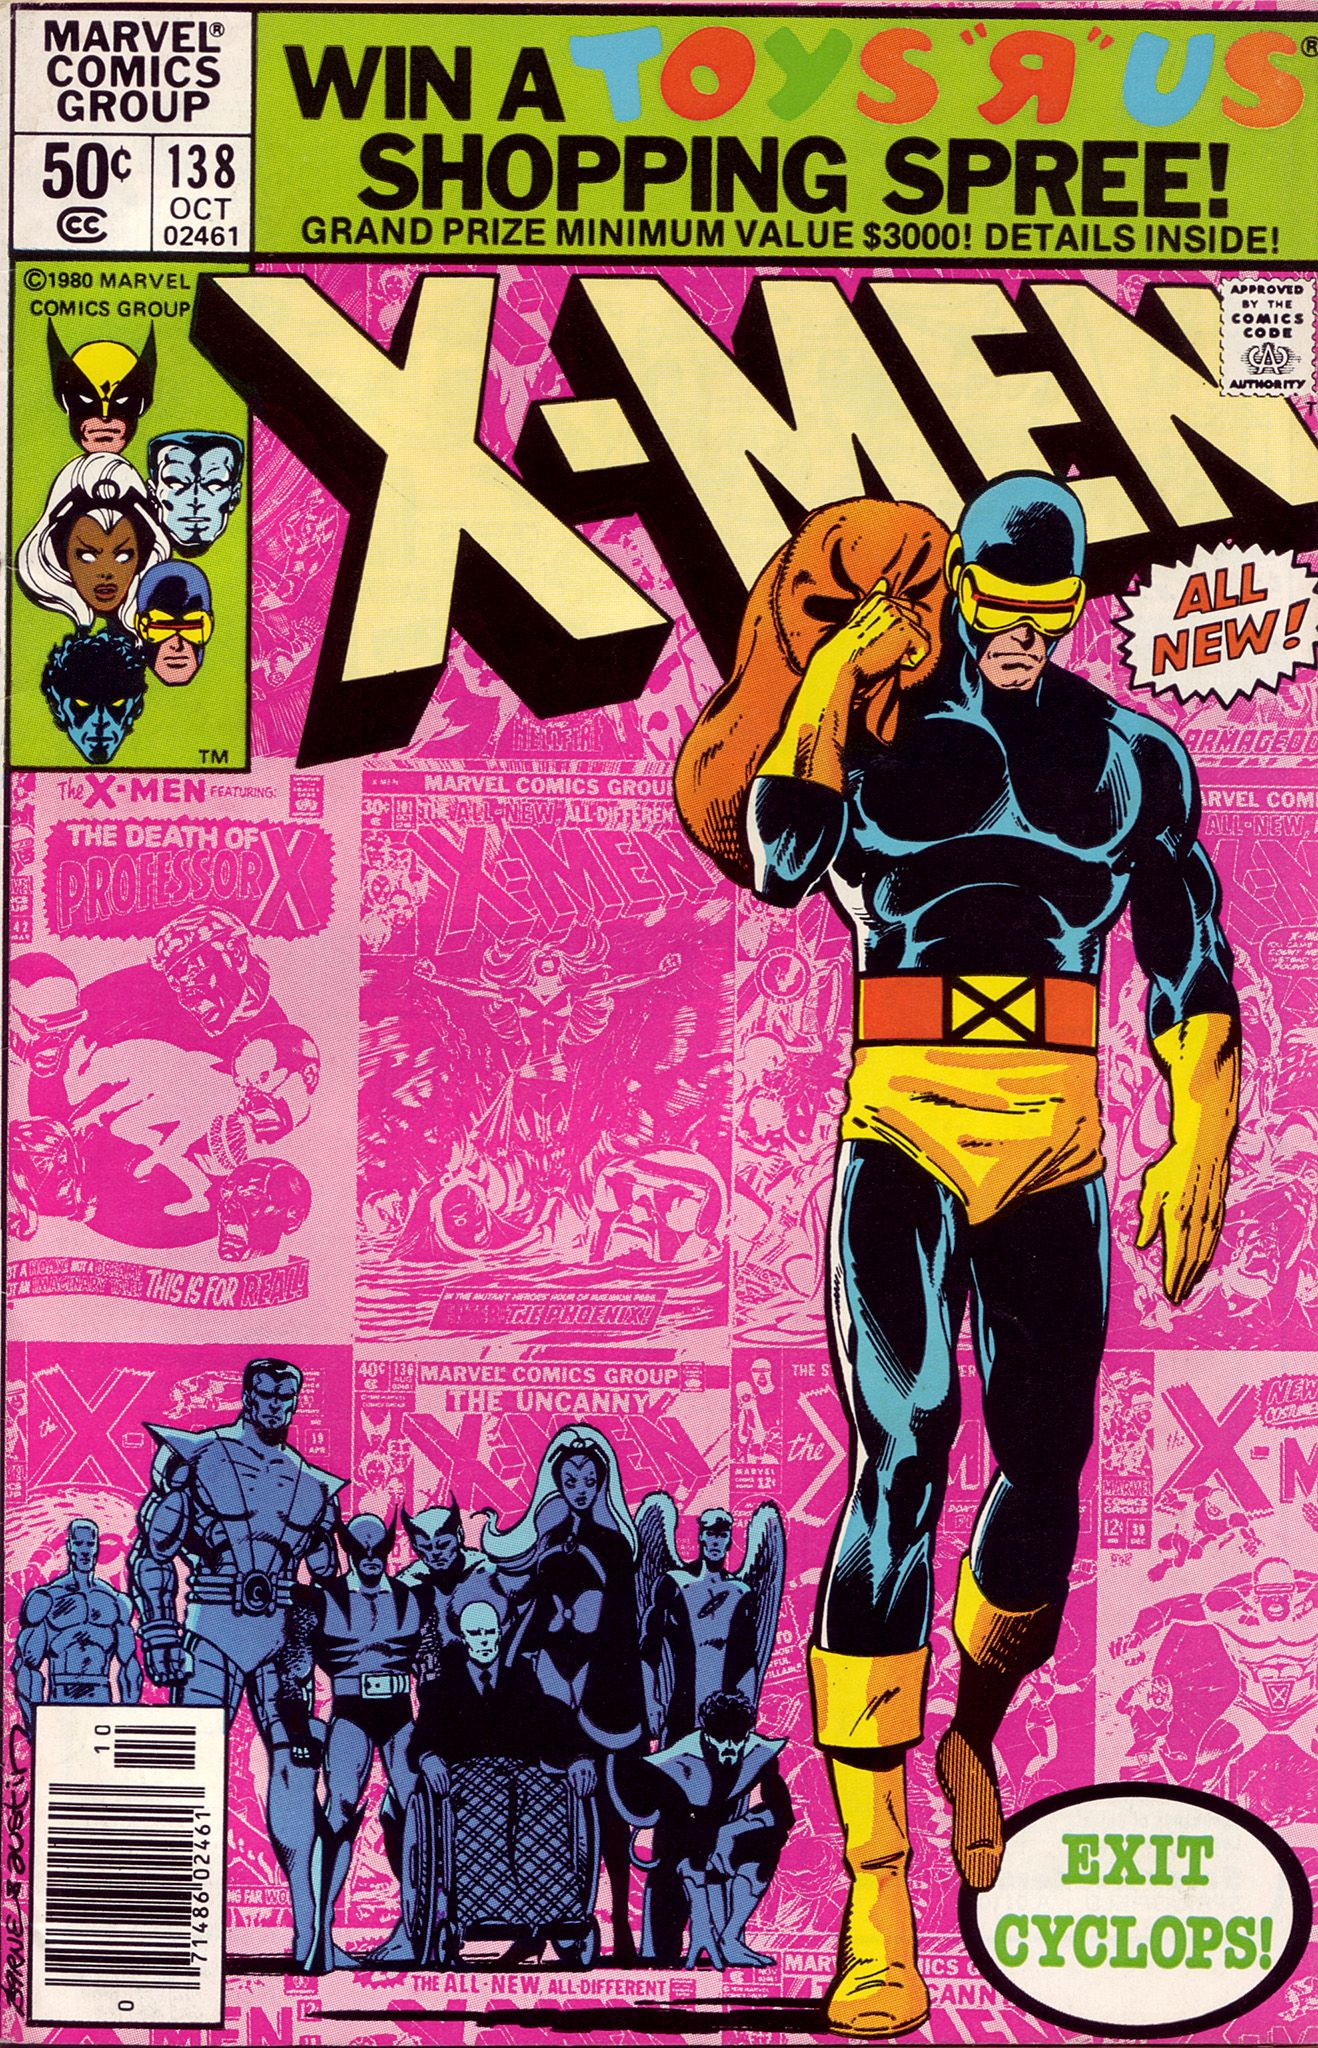 Uncanny X Men 138 Marvel 1980 Cover Art By John Byrne Inked By Terry Austin Marvel Comic Books Marvel Comics Covers Marvel Comics